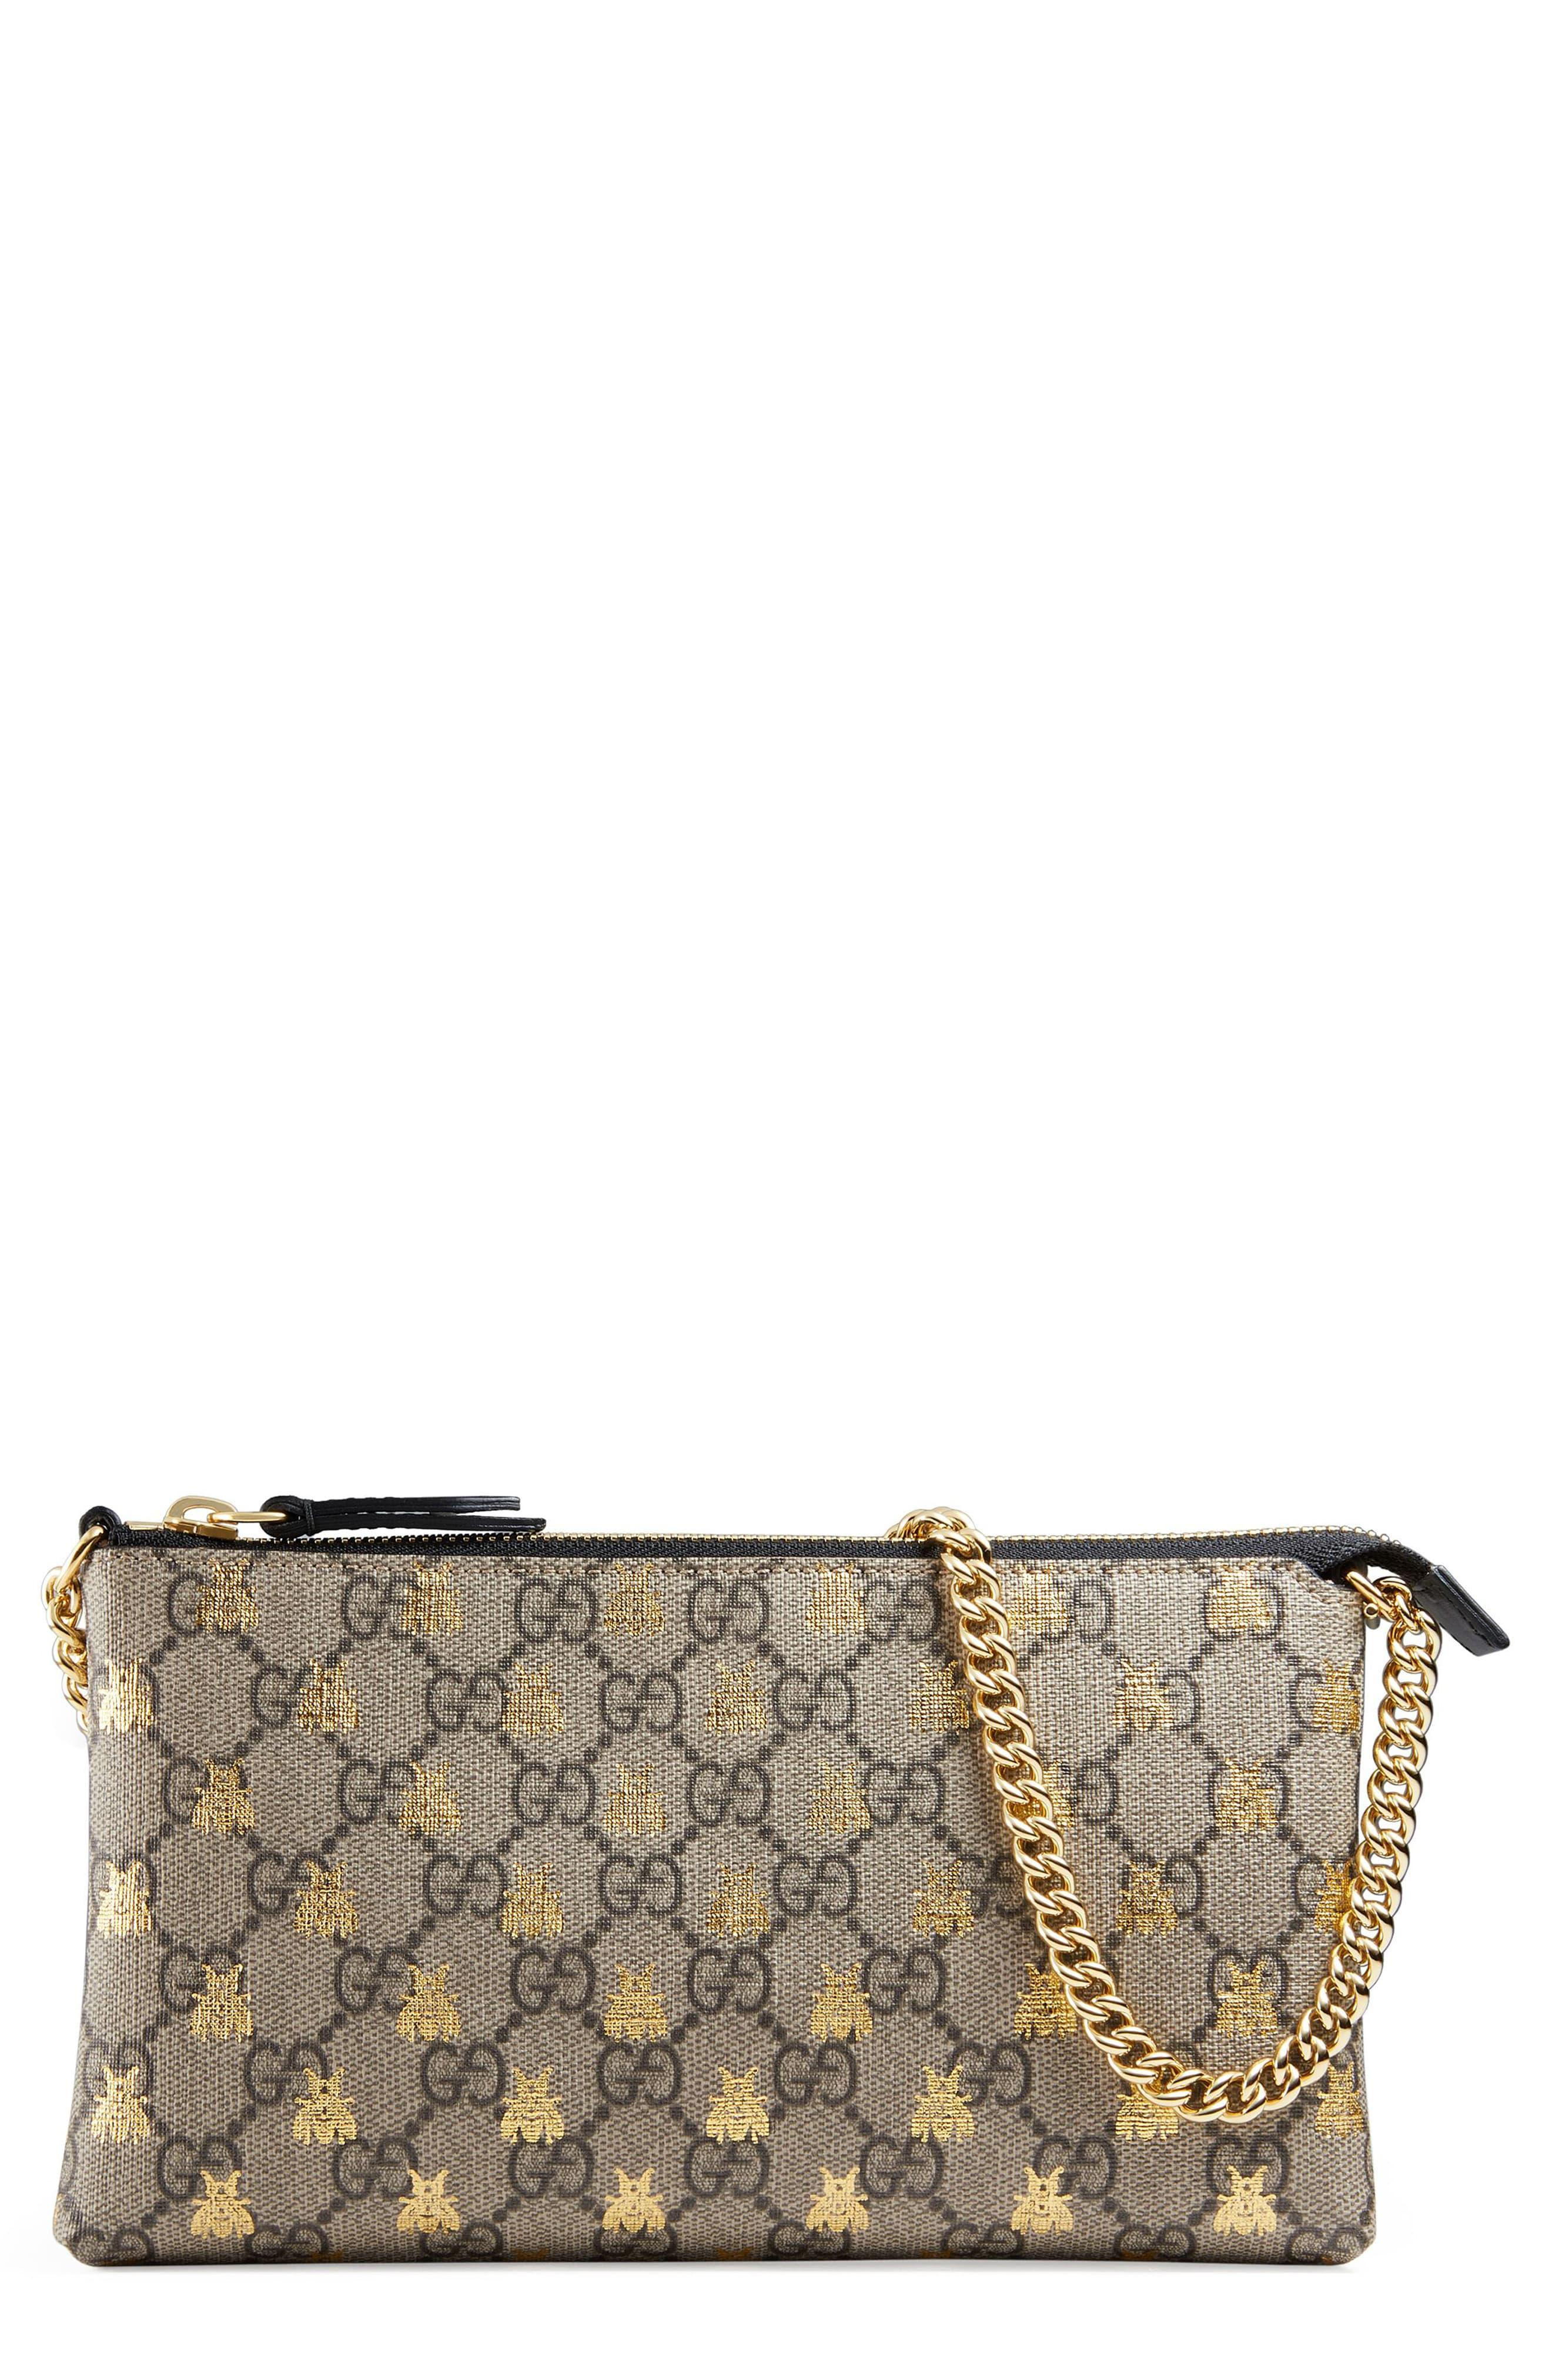 49ba1a69da9829 Gucci Linea Bee Gg Supreme Wrist Wallet in Natural - Lyst